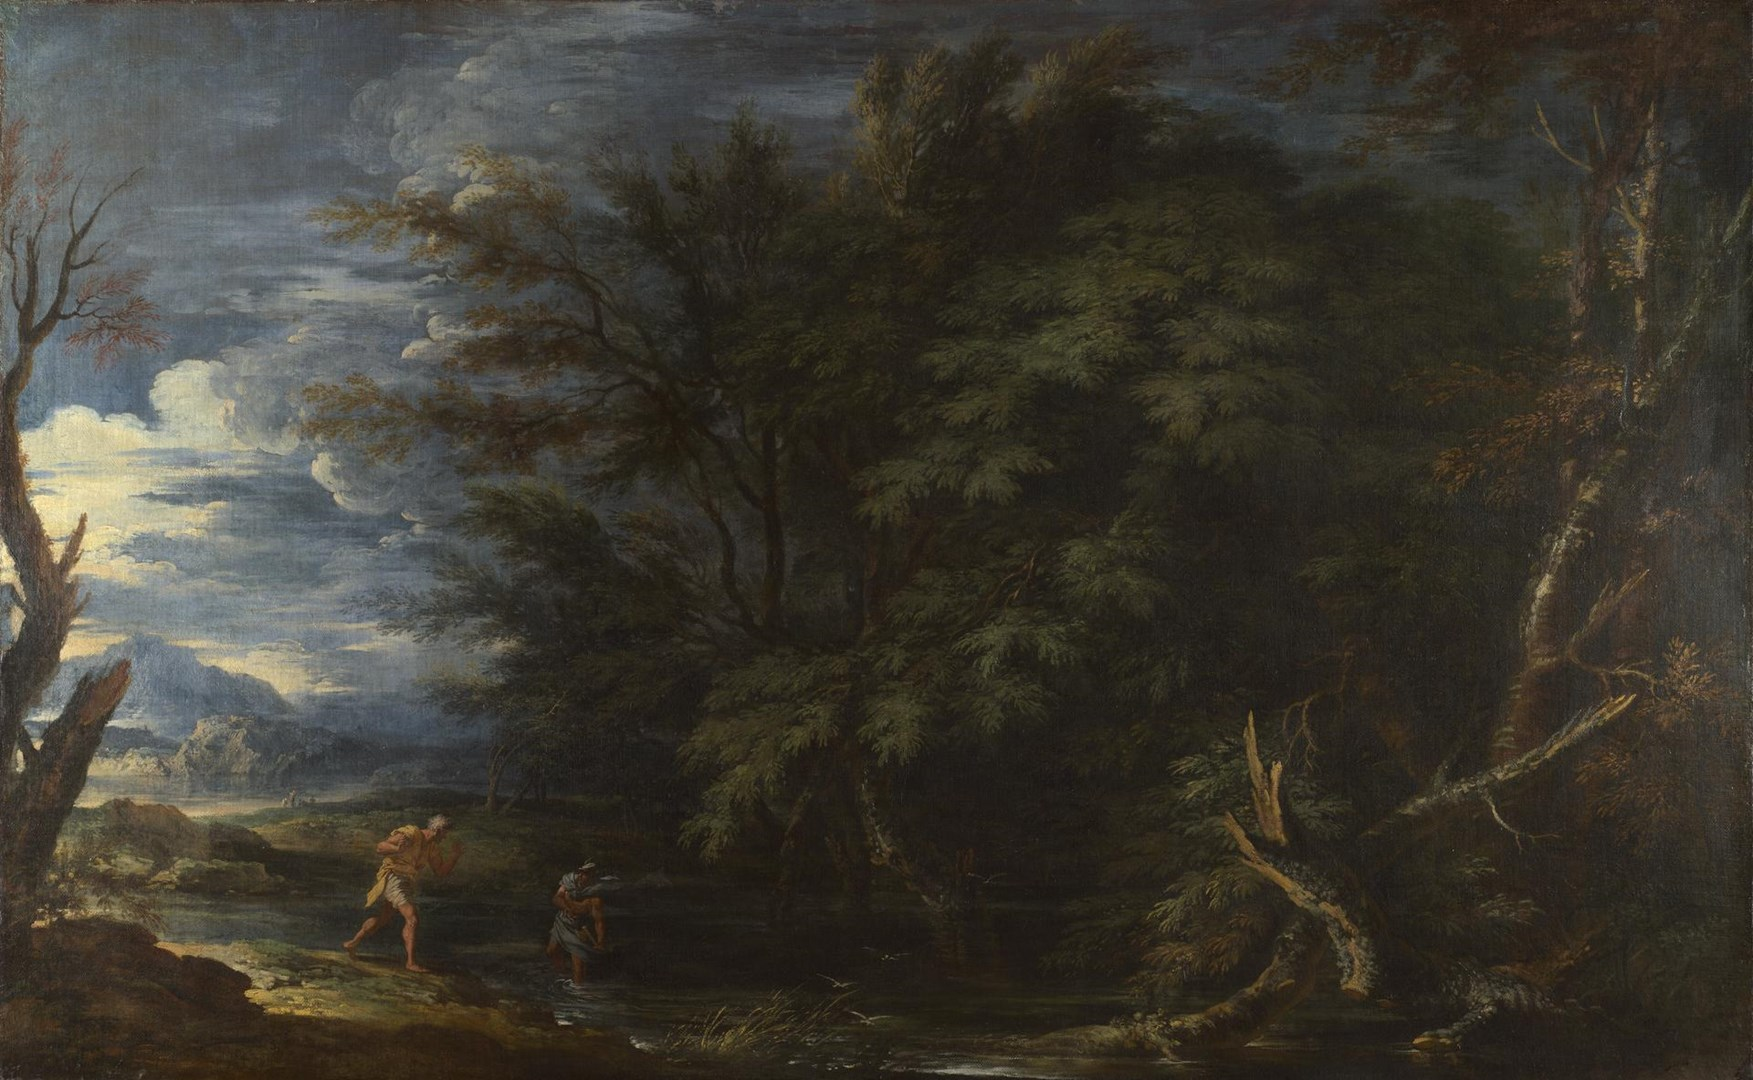 Landscape with Mercury and the Dishonest Woodman by Salvator Rosa